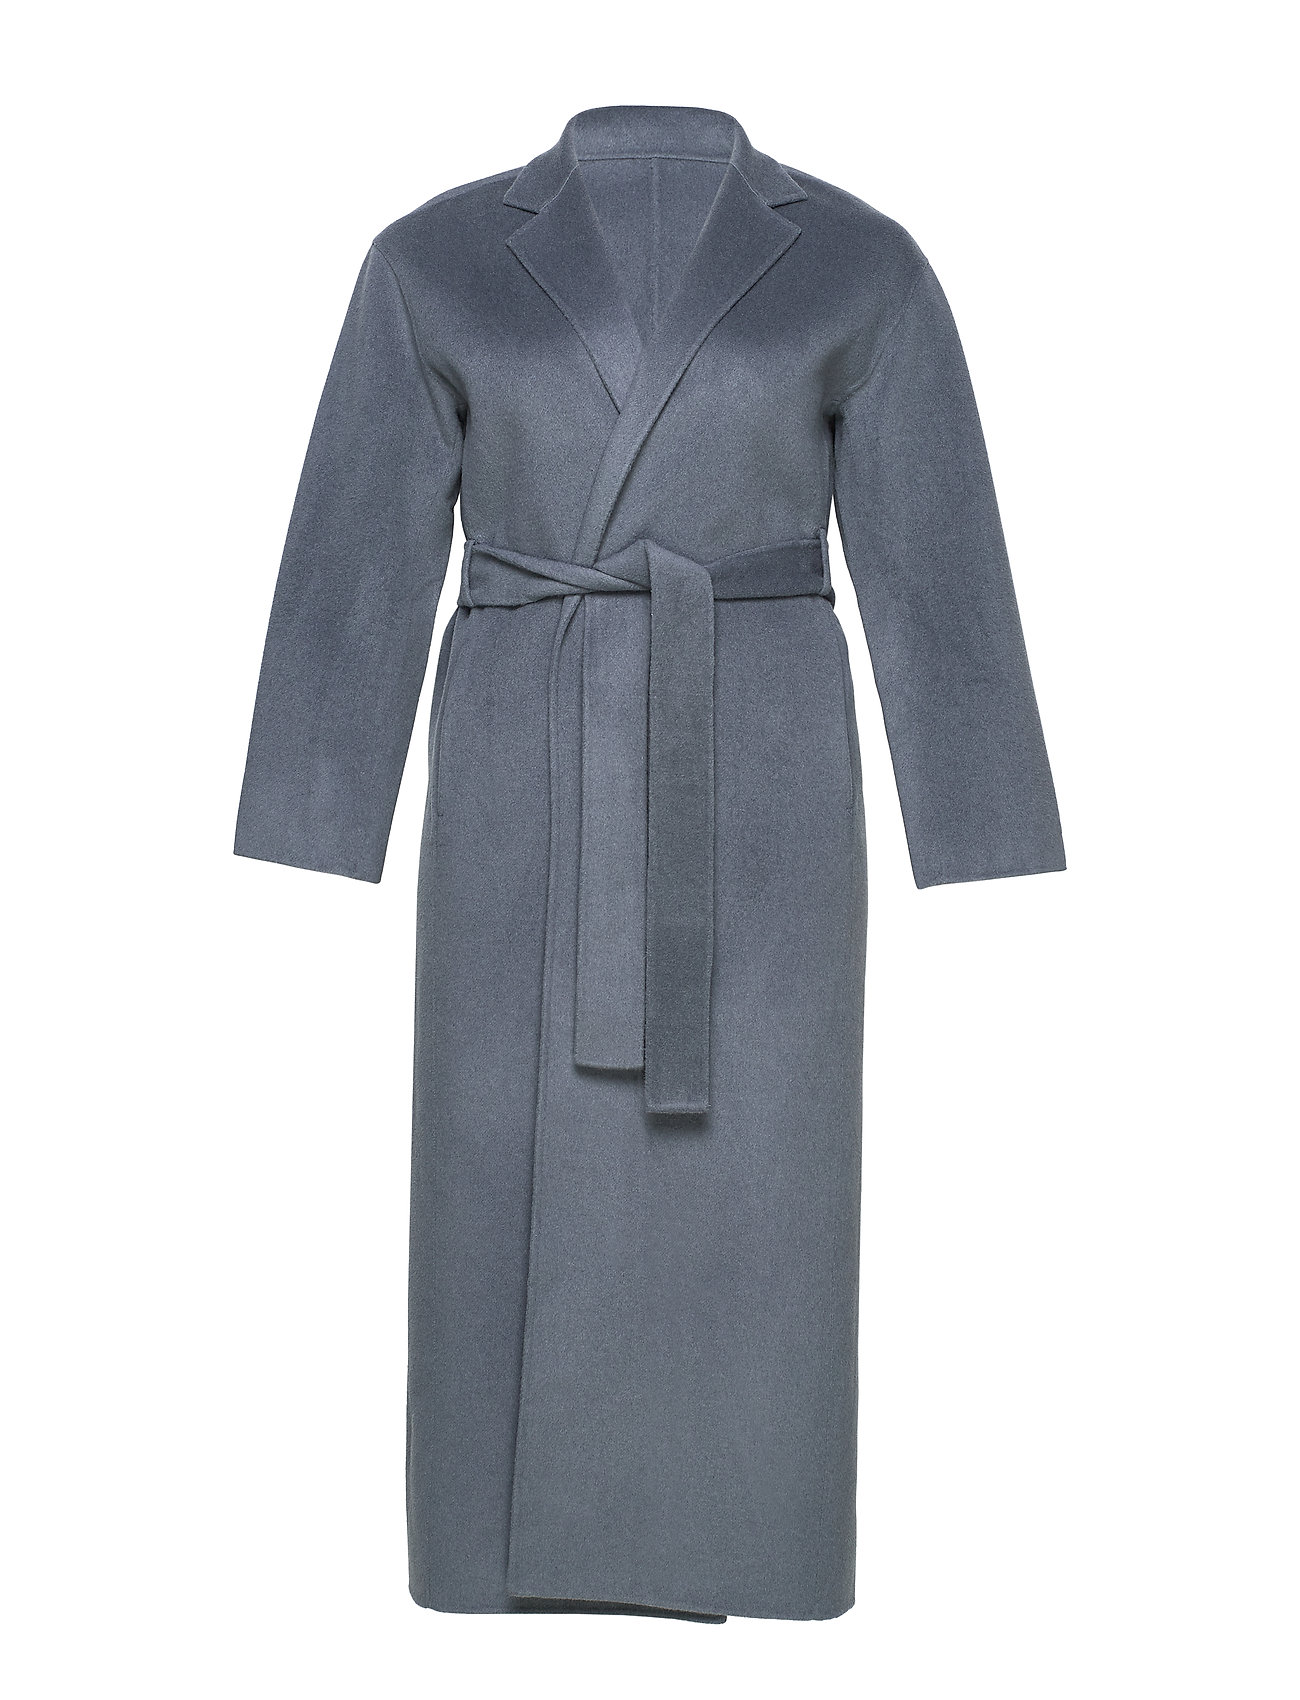 Filippa K Alexa Coat - BLUE GREY